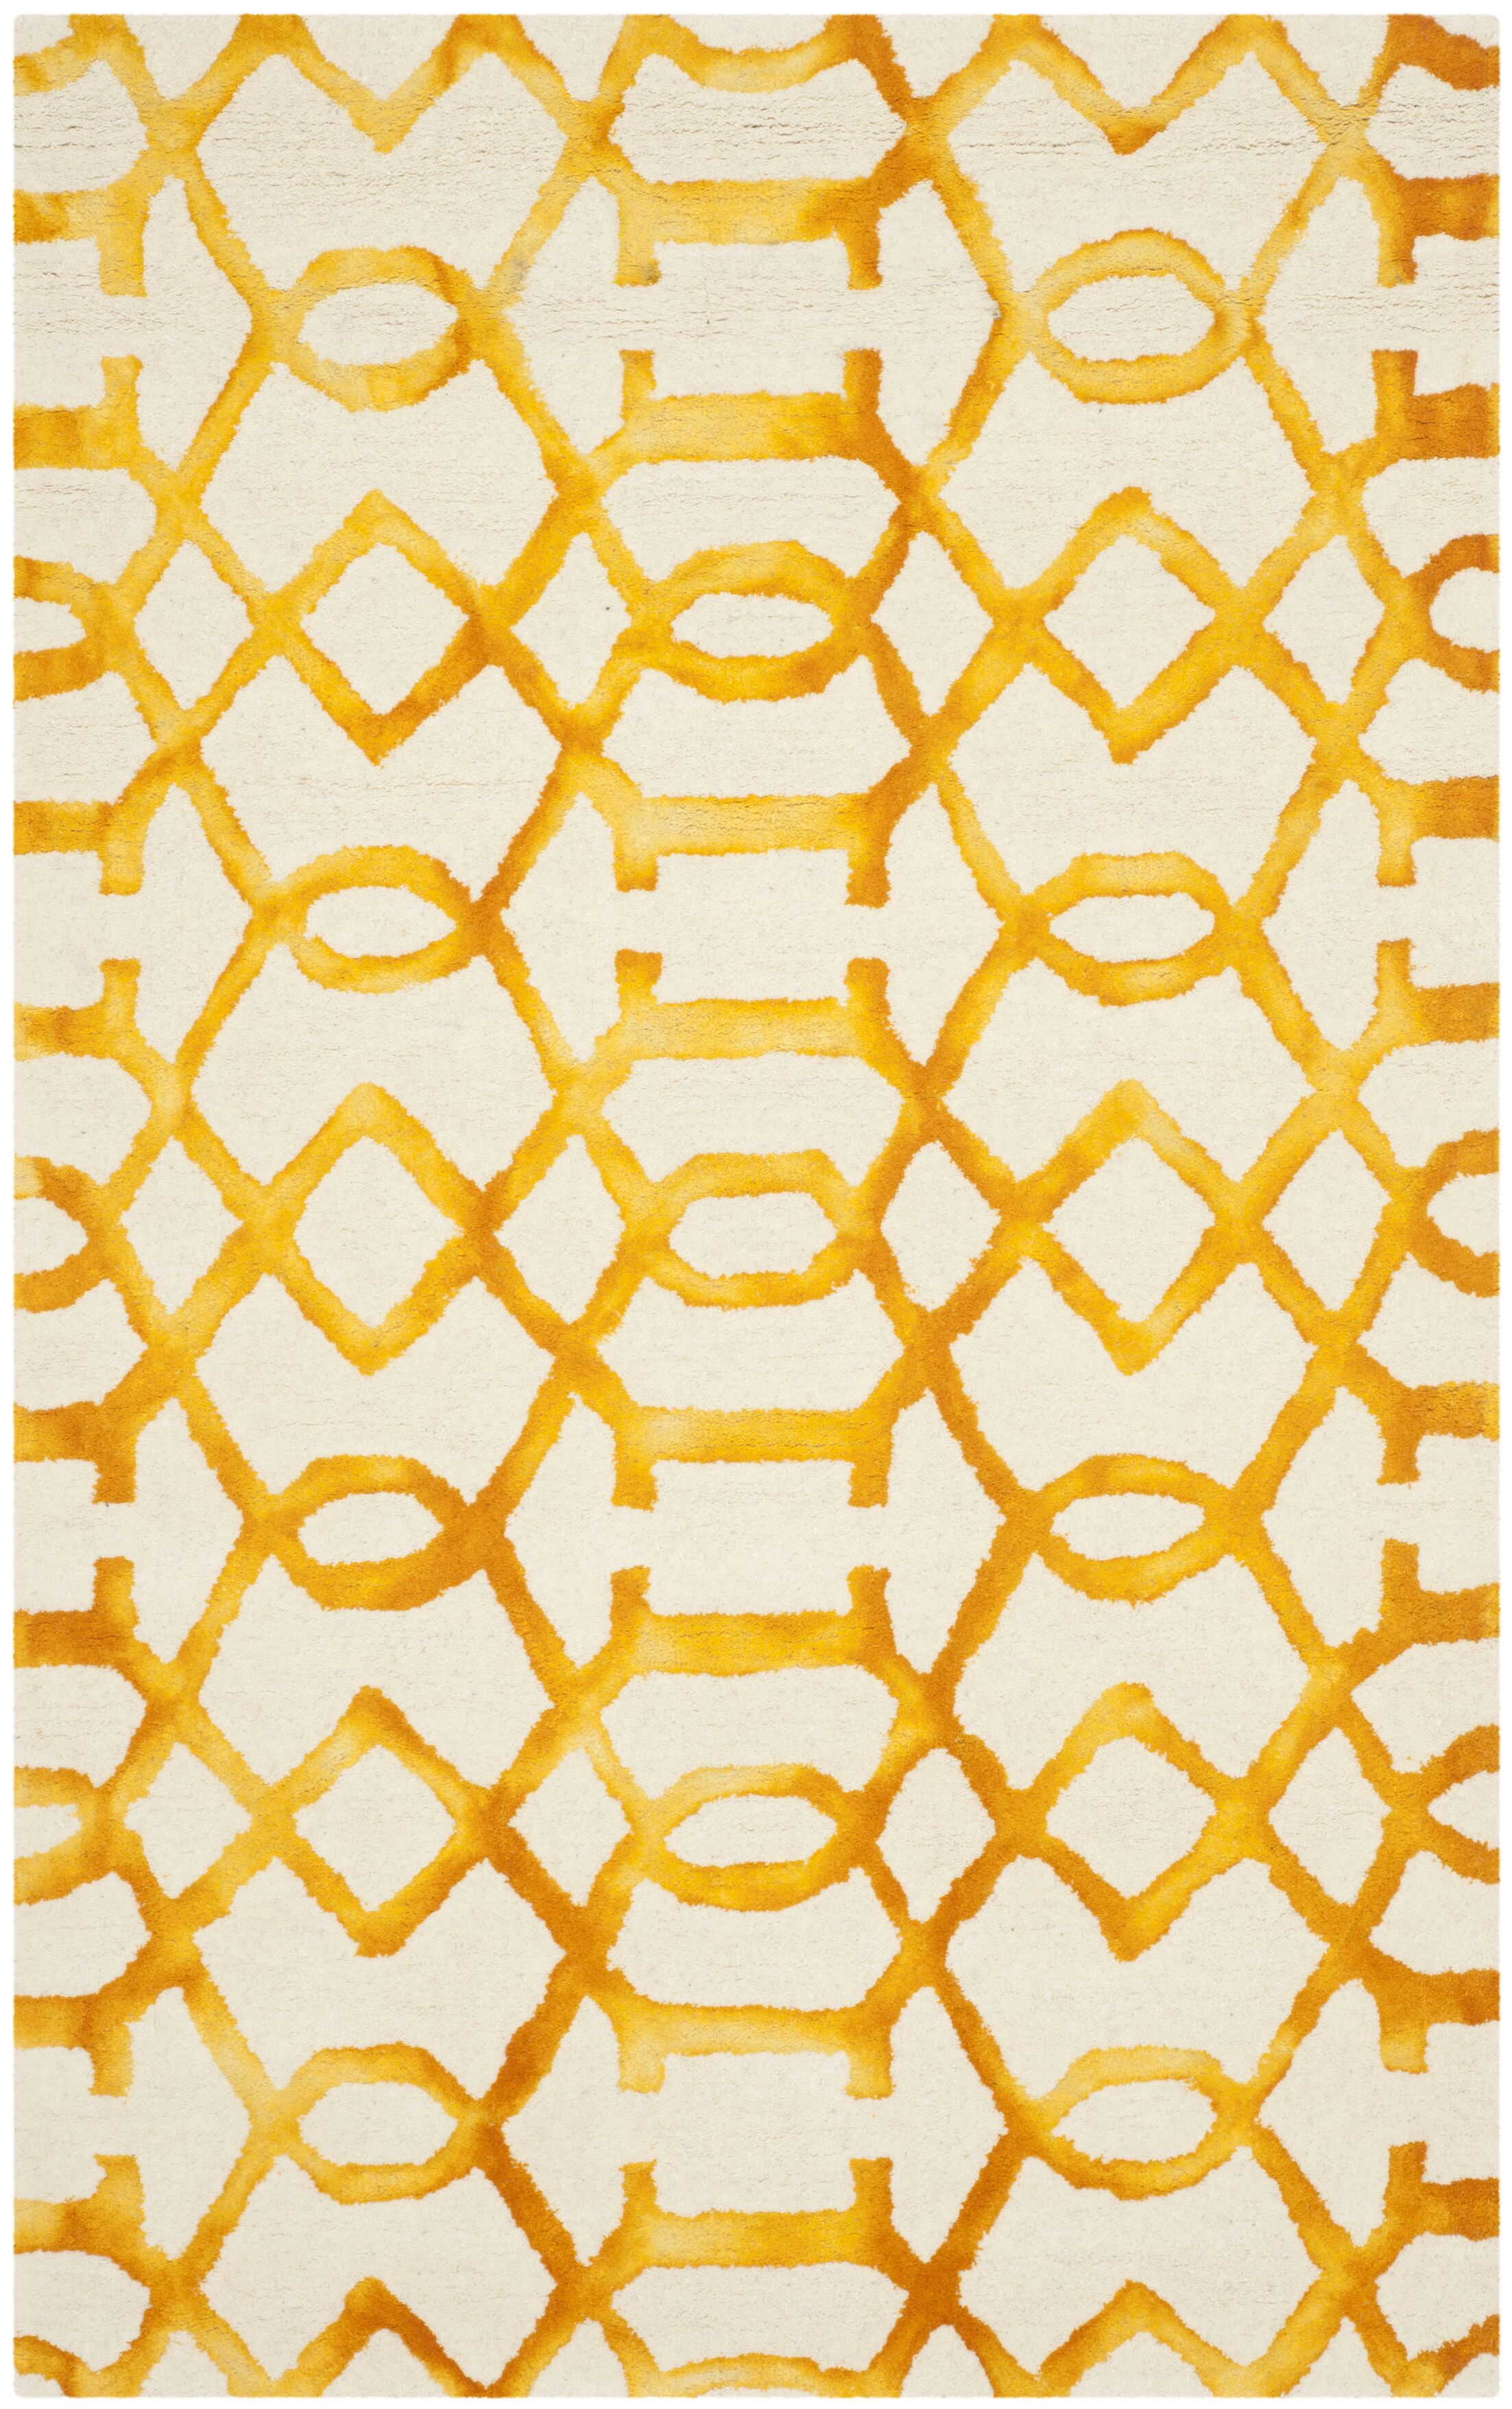 Sinclair Ivory/Gold Area Rug Rug Size: Rectangle 9' x 12'